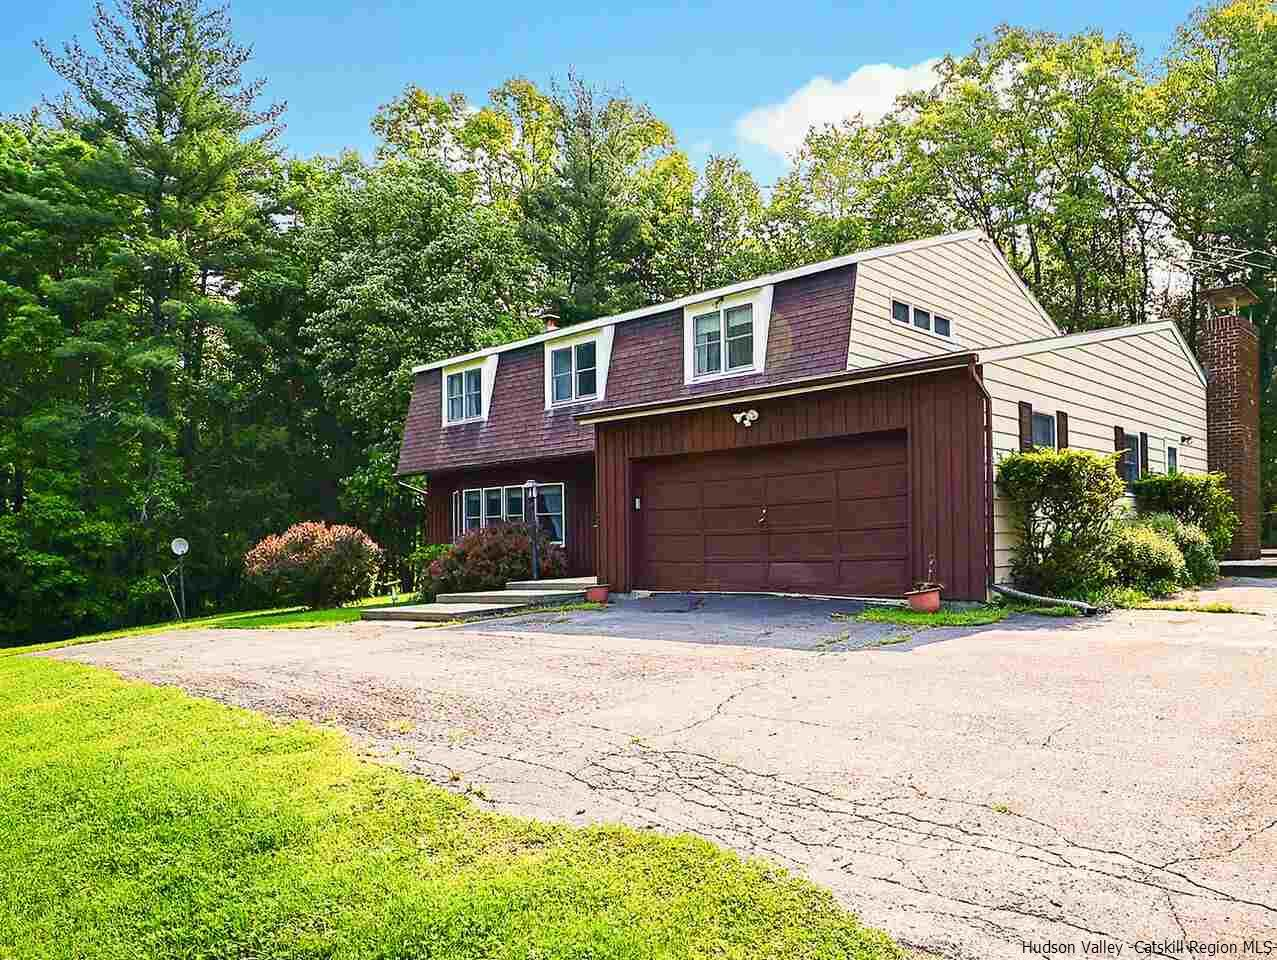 Single Family Home for Sale at 2991 Route 209 2991 Route 209 Kingston, New York 12401 United States